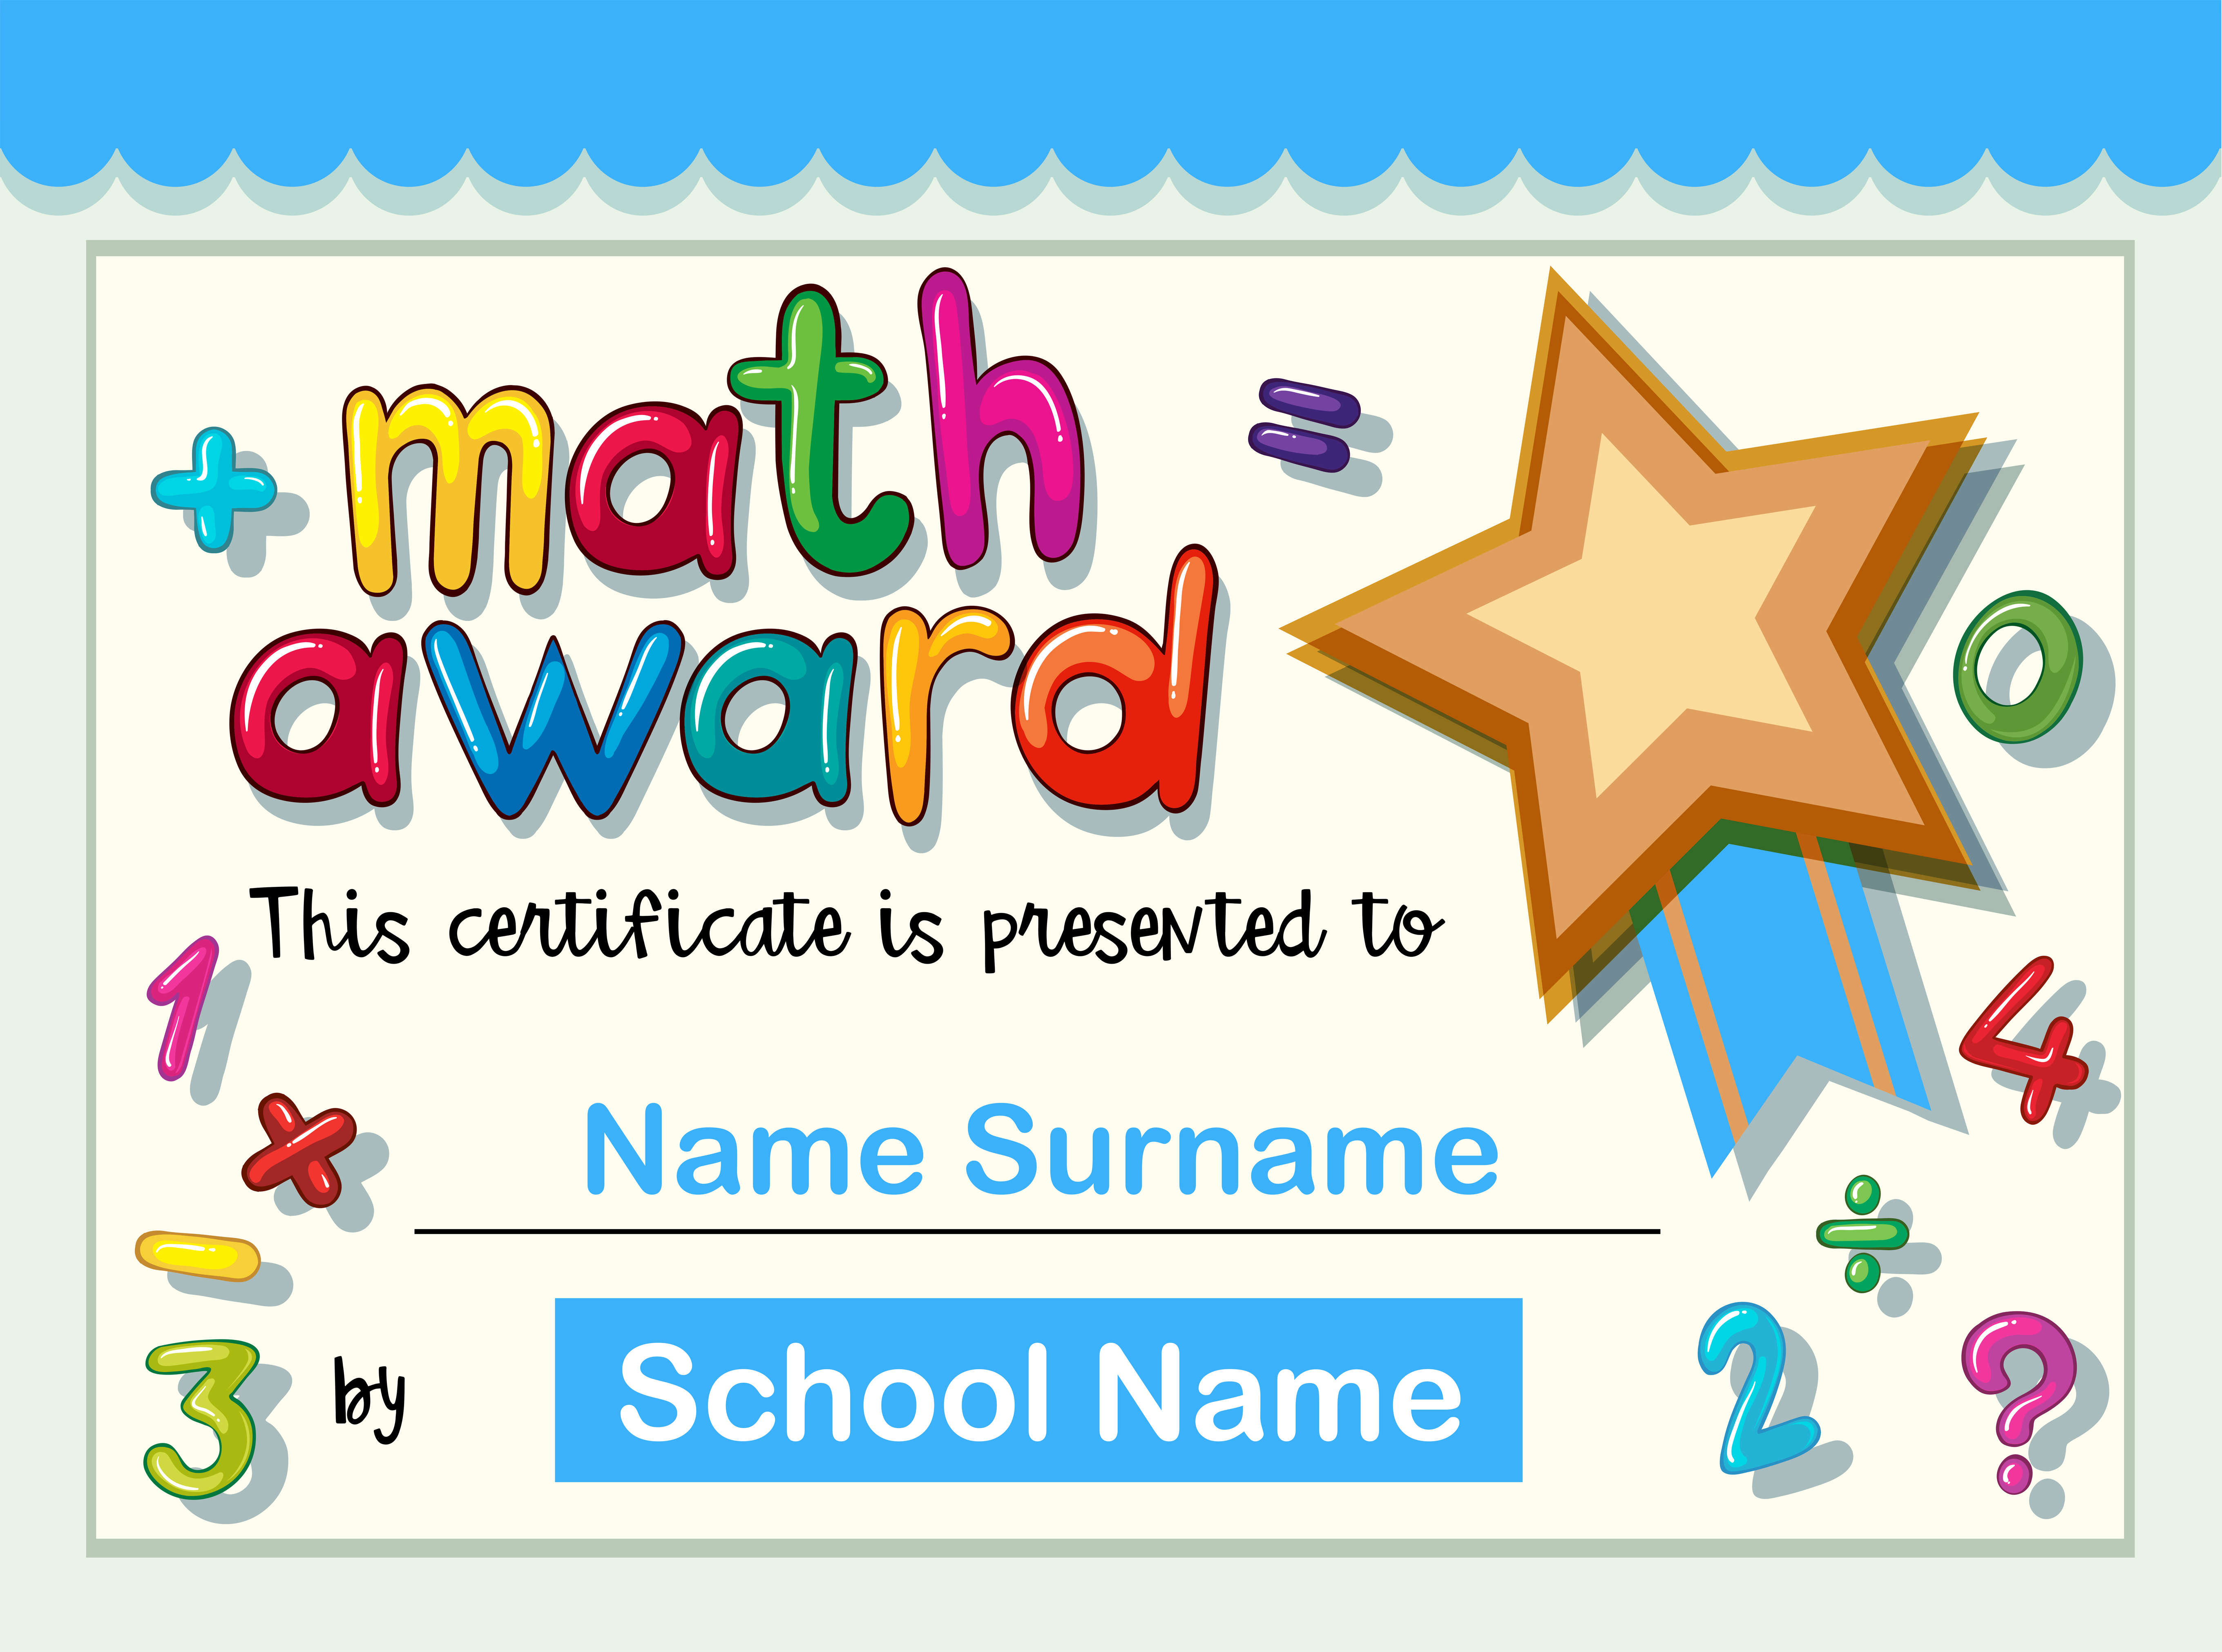 Certificate template for math award with golden star 21 Vector With Star Award Certificate Template